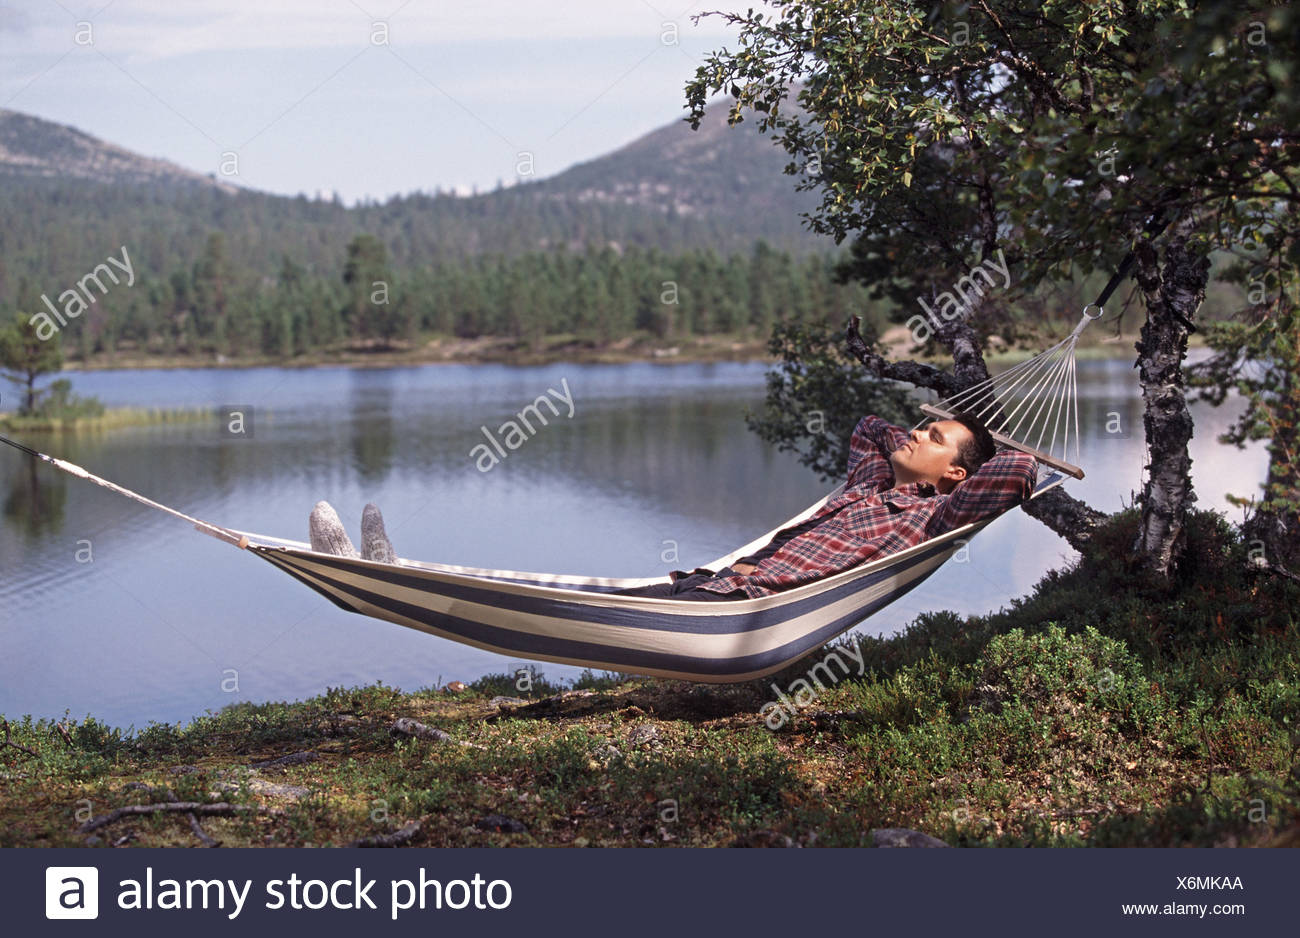 Man laying in a hammock and in background mountains and a lake - Stock Image